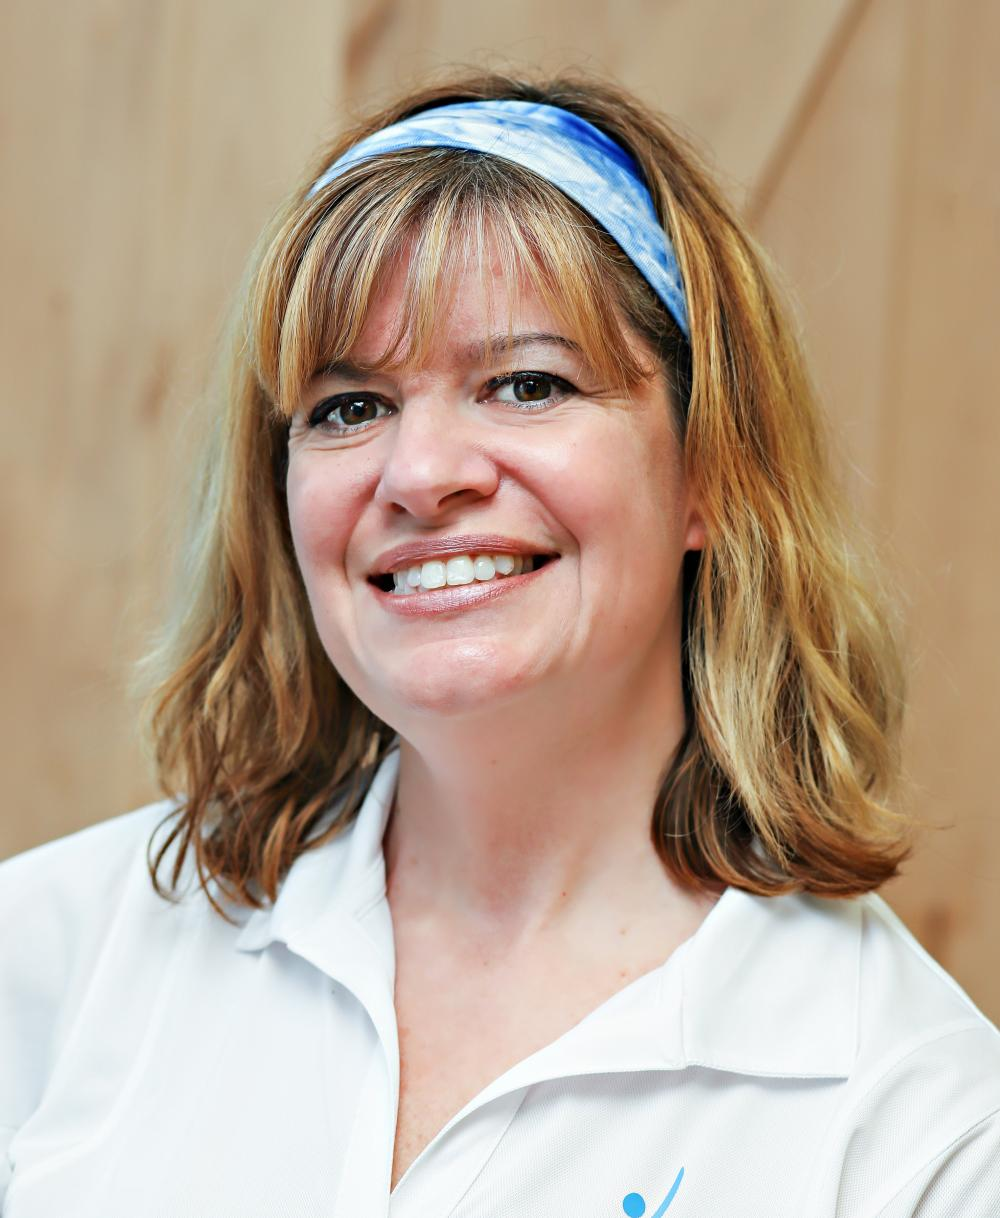 Lori Wagner - Lori has a Bachelor's Degree in Social Work and spent many years working around Atlantic County in long-term care and for Intergenerational Services. She discovered a love for fitness and in 2016 became a Certified Personal Trainer through ACE, the American Council on Exercise. She has additional certification in Senior Fitness and enjoys working with older adults. She enjoys working one on one with her clients, teaching Balance and Total Body Tone Up classes and helping new gym members feel welcome. When she is not at work or working out, she enjoys gardening and baseball (Go Phillies!). Lori is a proud wife and mother of two kids.